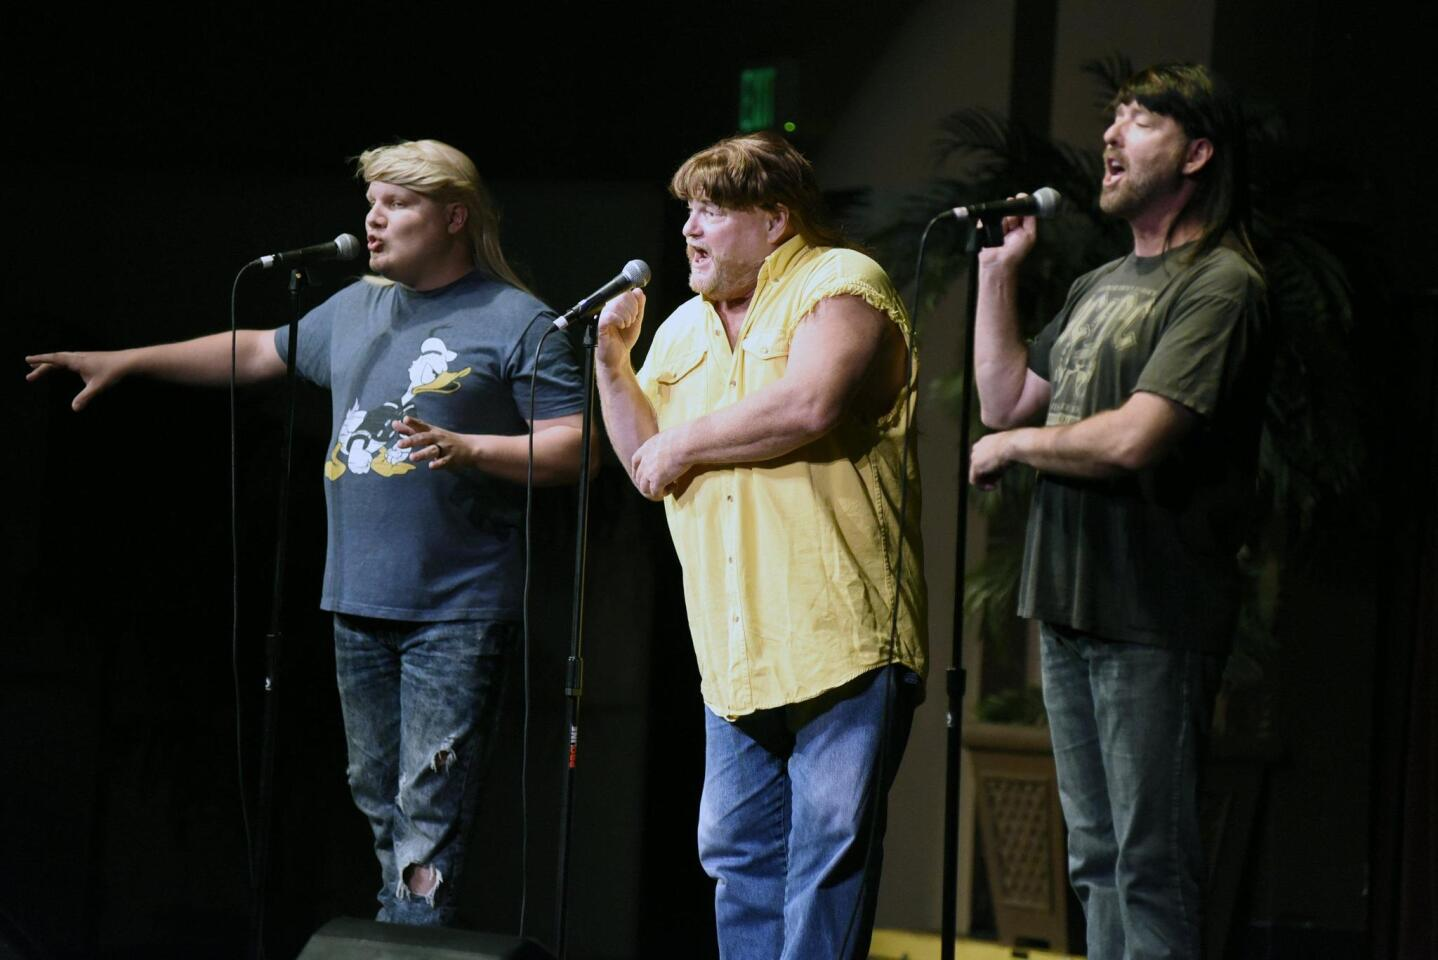 Community Concerts of RSF presents 3 Redneck Tenors